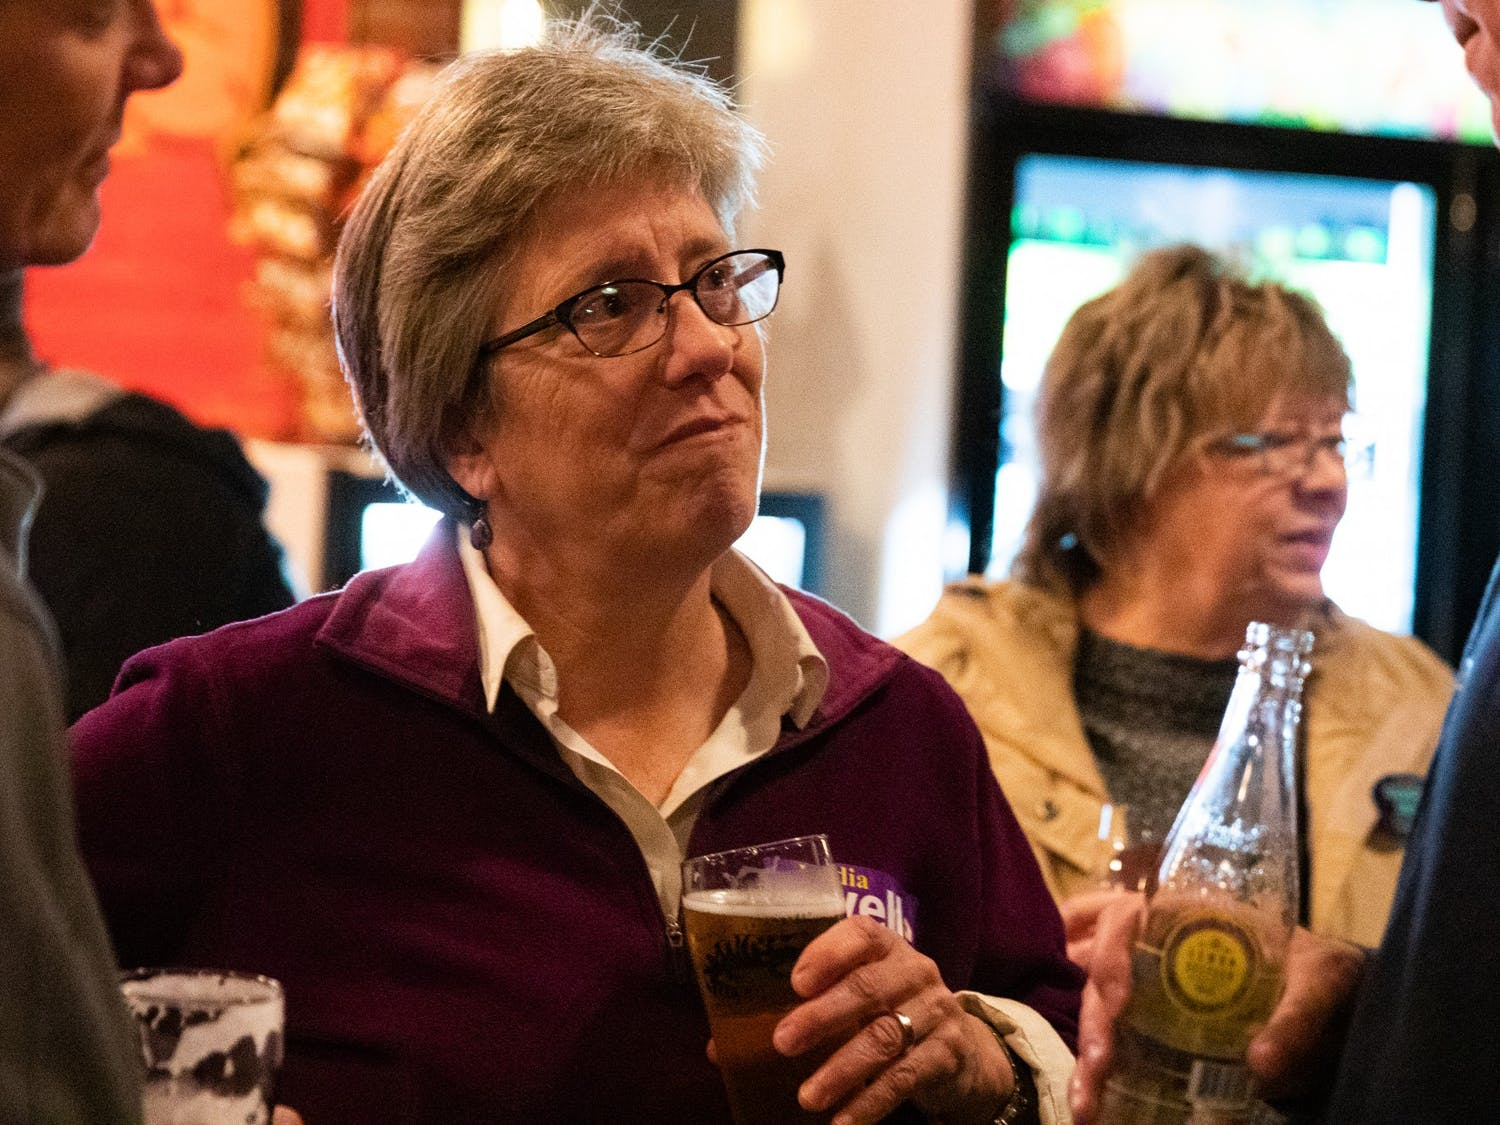 Carrboro mayoral candidate Lydia Lavelle attends a watch party hosted by alderman candidate Damon Seils' campaign at Steel String Brewery in Carrboro on Tuesday, Nov. 5, 2019.